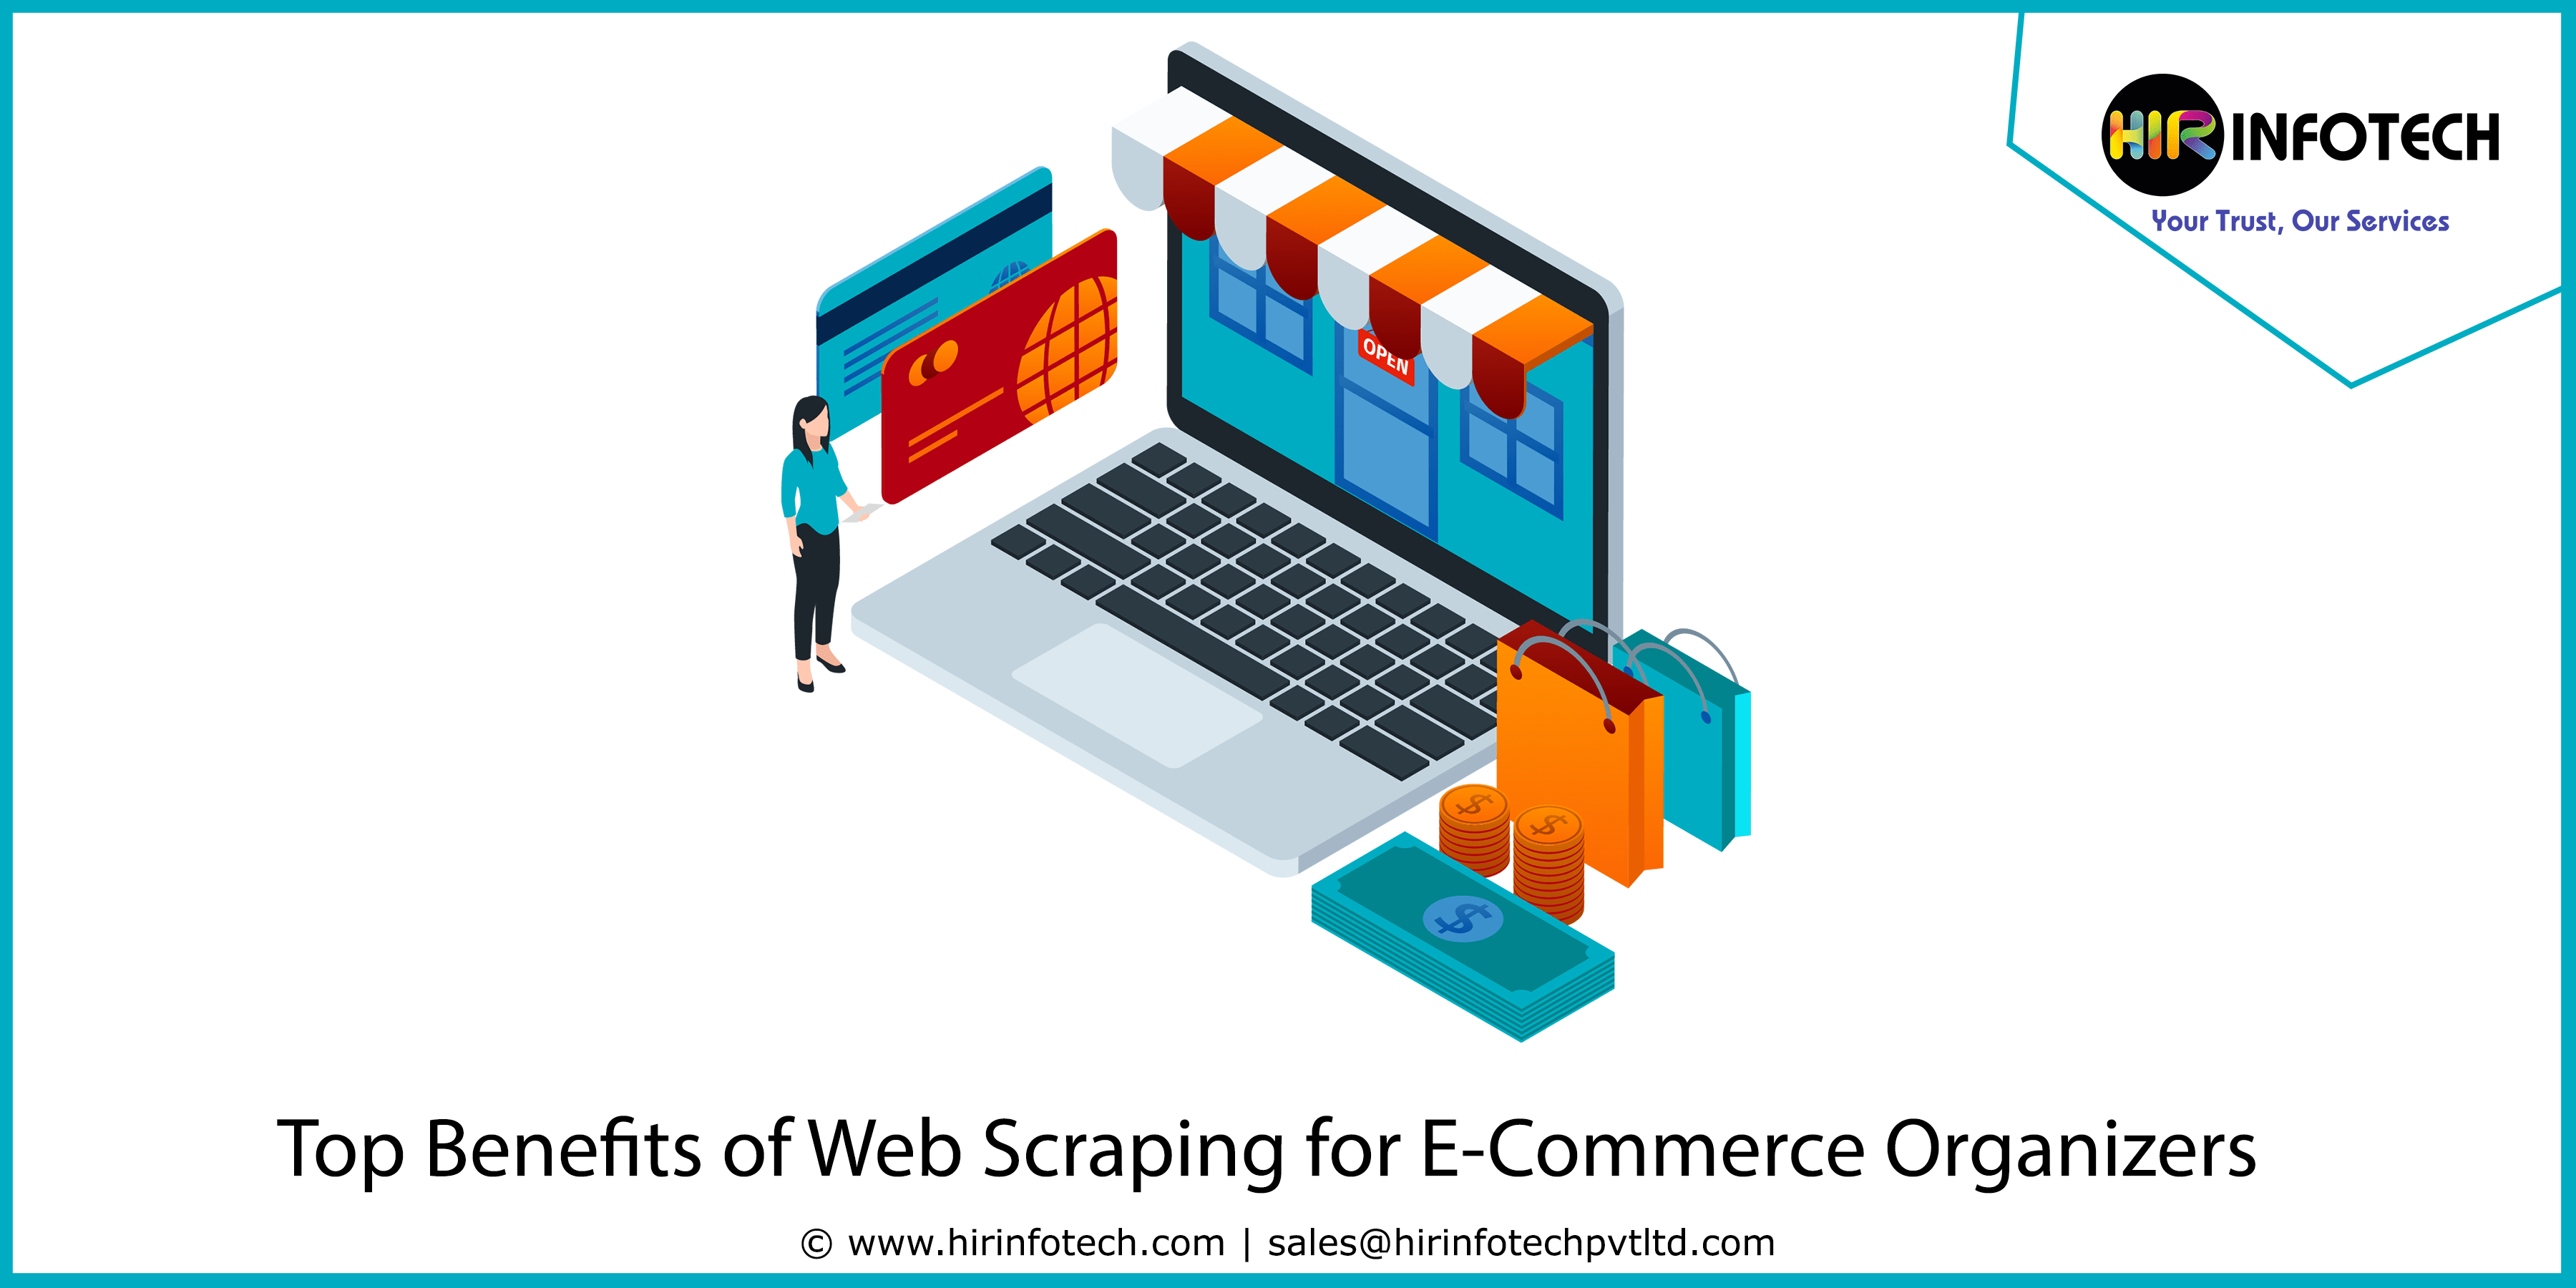 Top Benefits of Web Scraping for E-Commerce Organizers